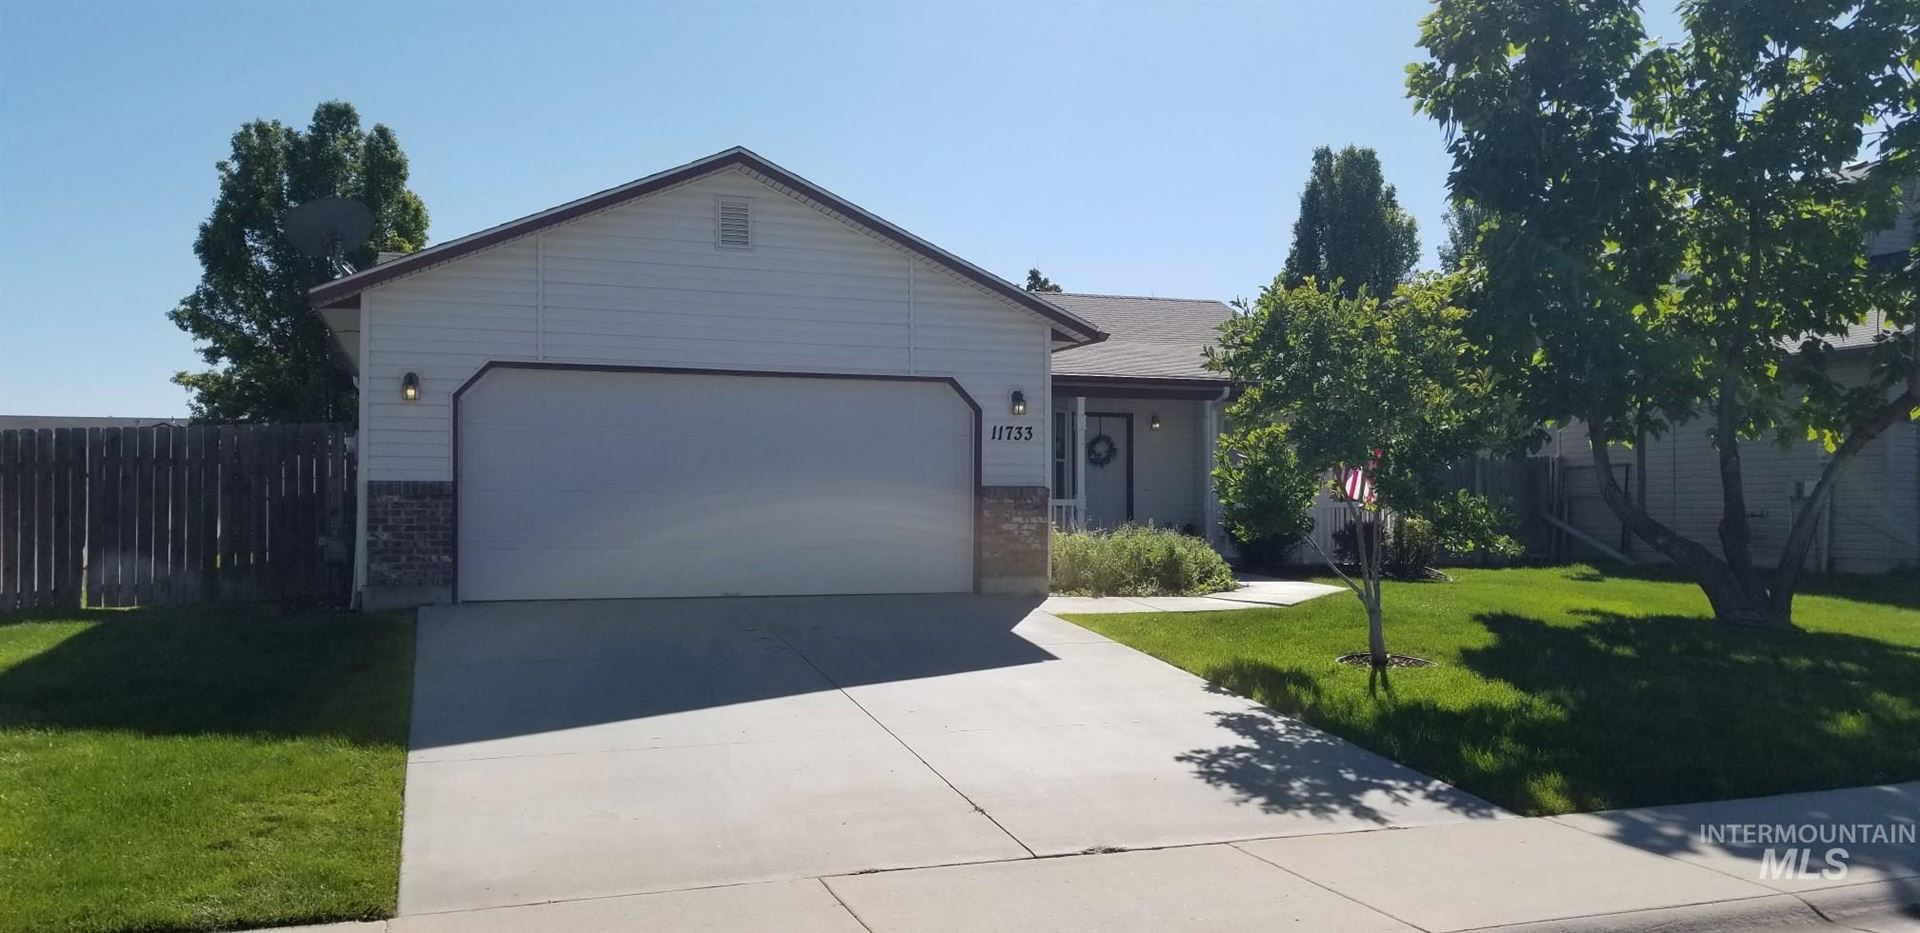 Photo of 11733 W Trinity Ave, Nampa, ID 83651 (MLS # 98782256)